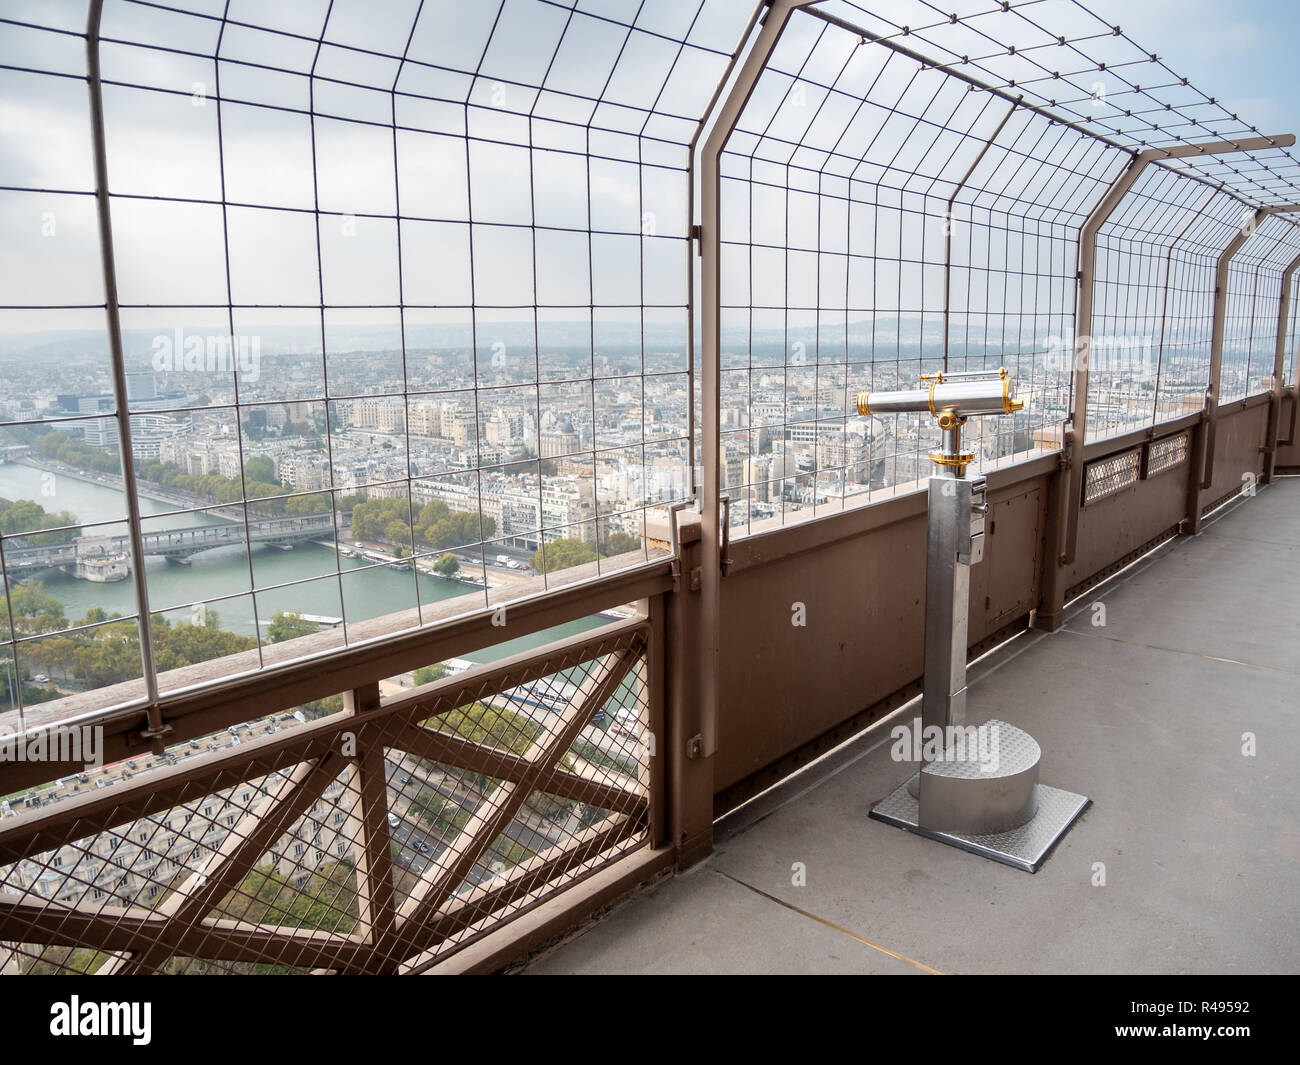 View of Walk Up Telescope in the Eiffel Tower West Side - Stock Image